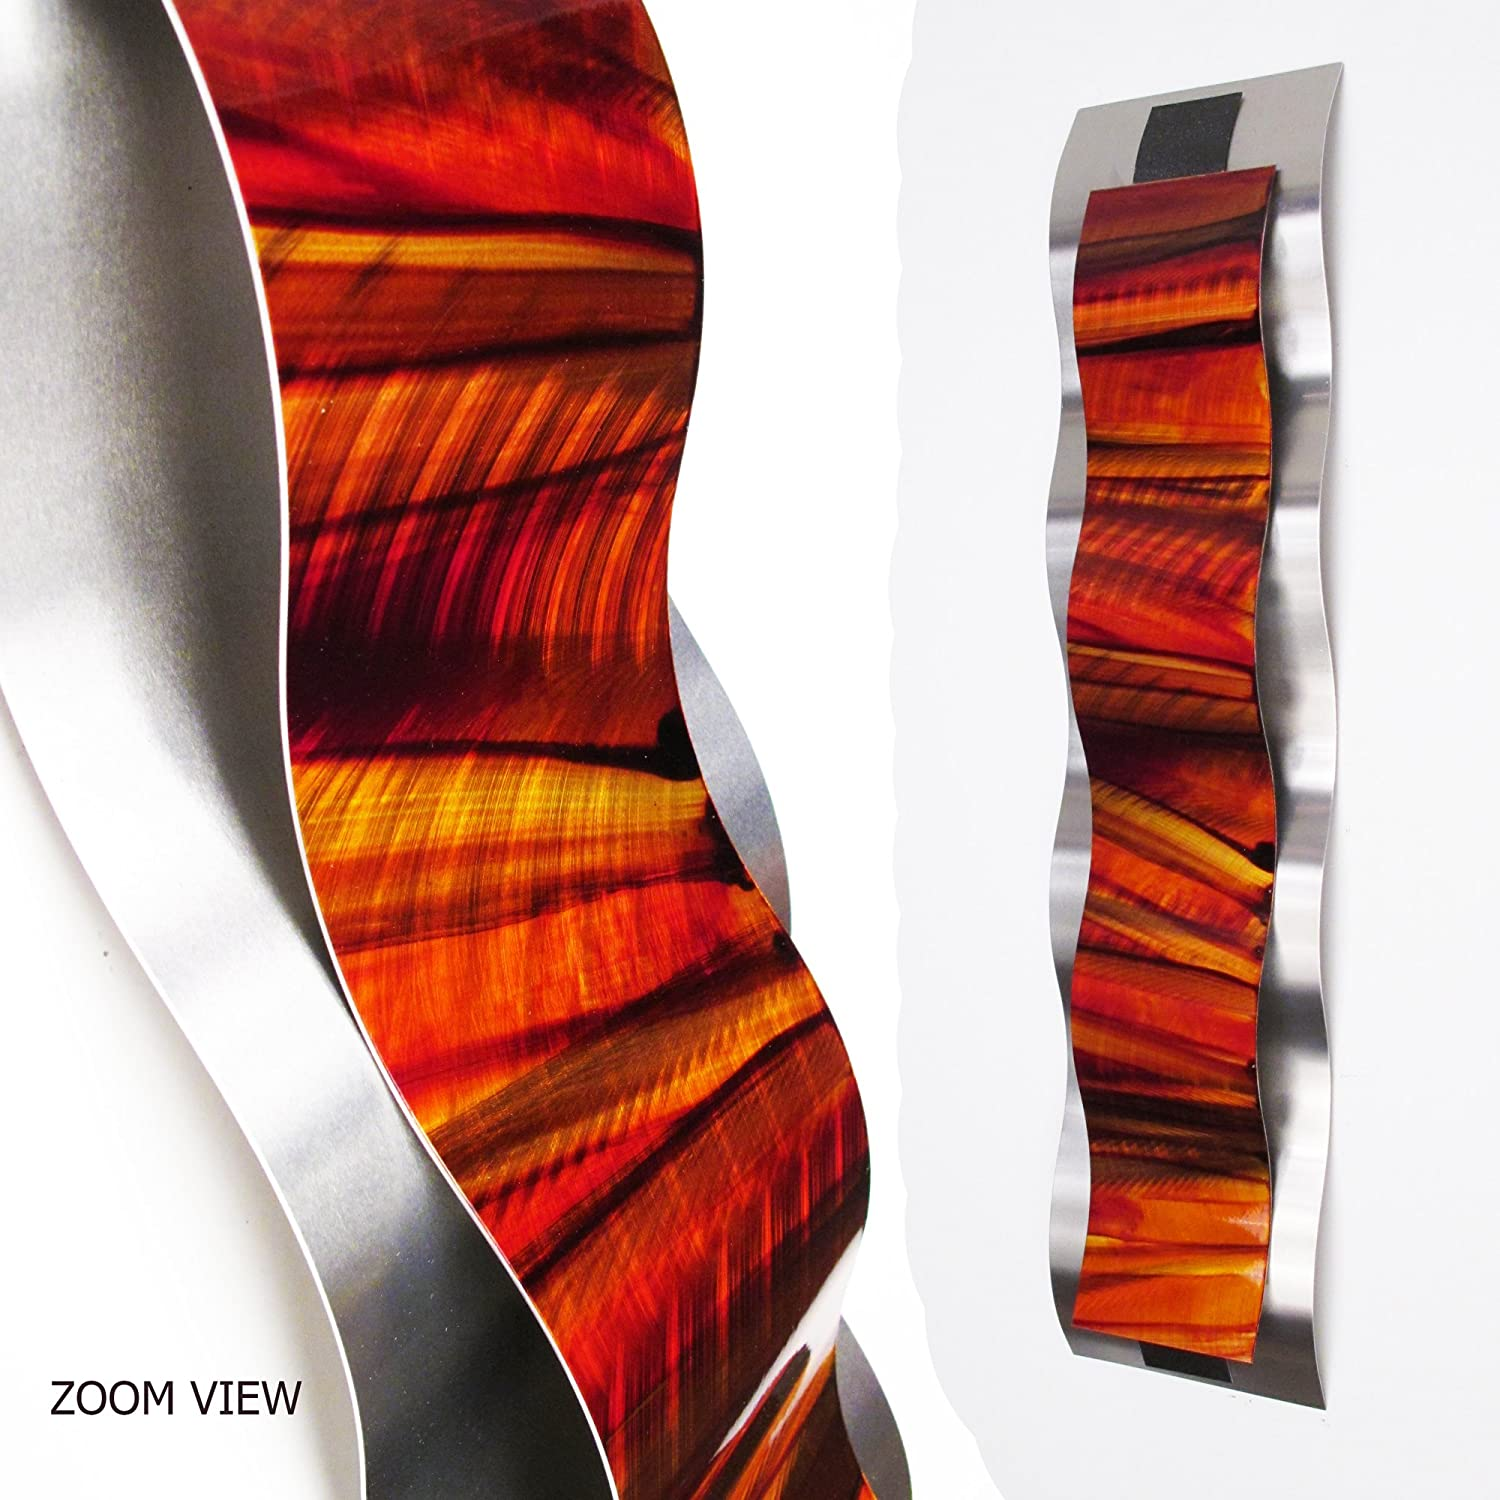 amazoncom rhythmic curves red orange modern abstract metal  - amazoncom rhythmic curves red orange modern abstract metal wall artsculpture painting home decor home  kitchen